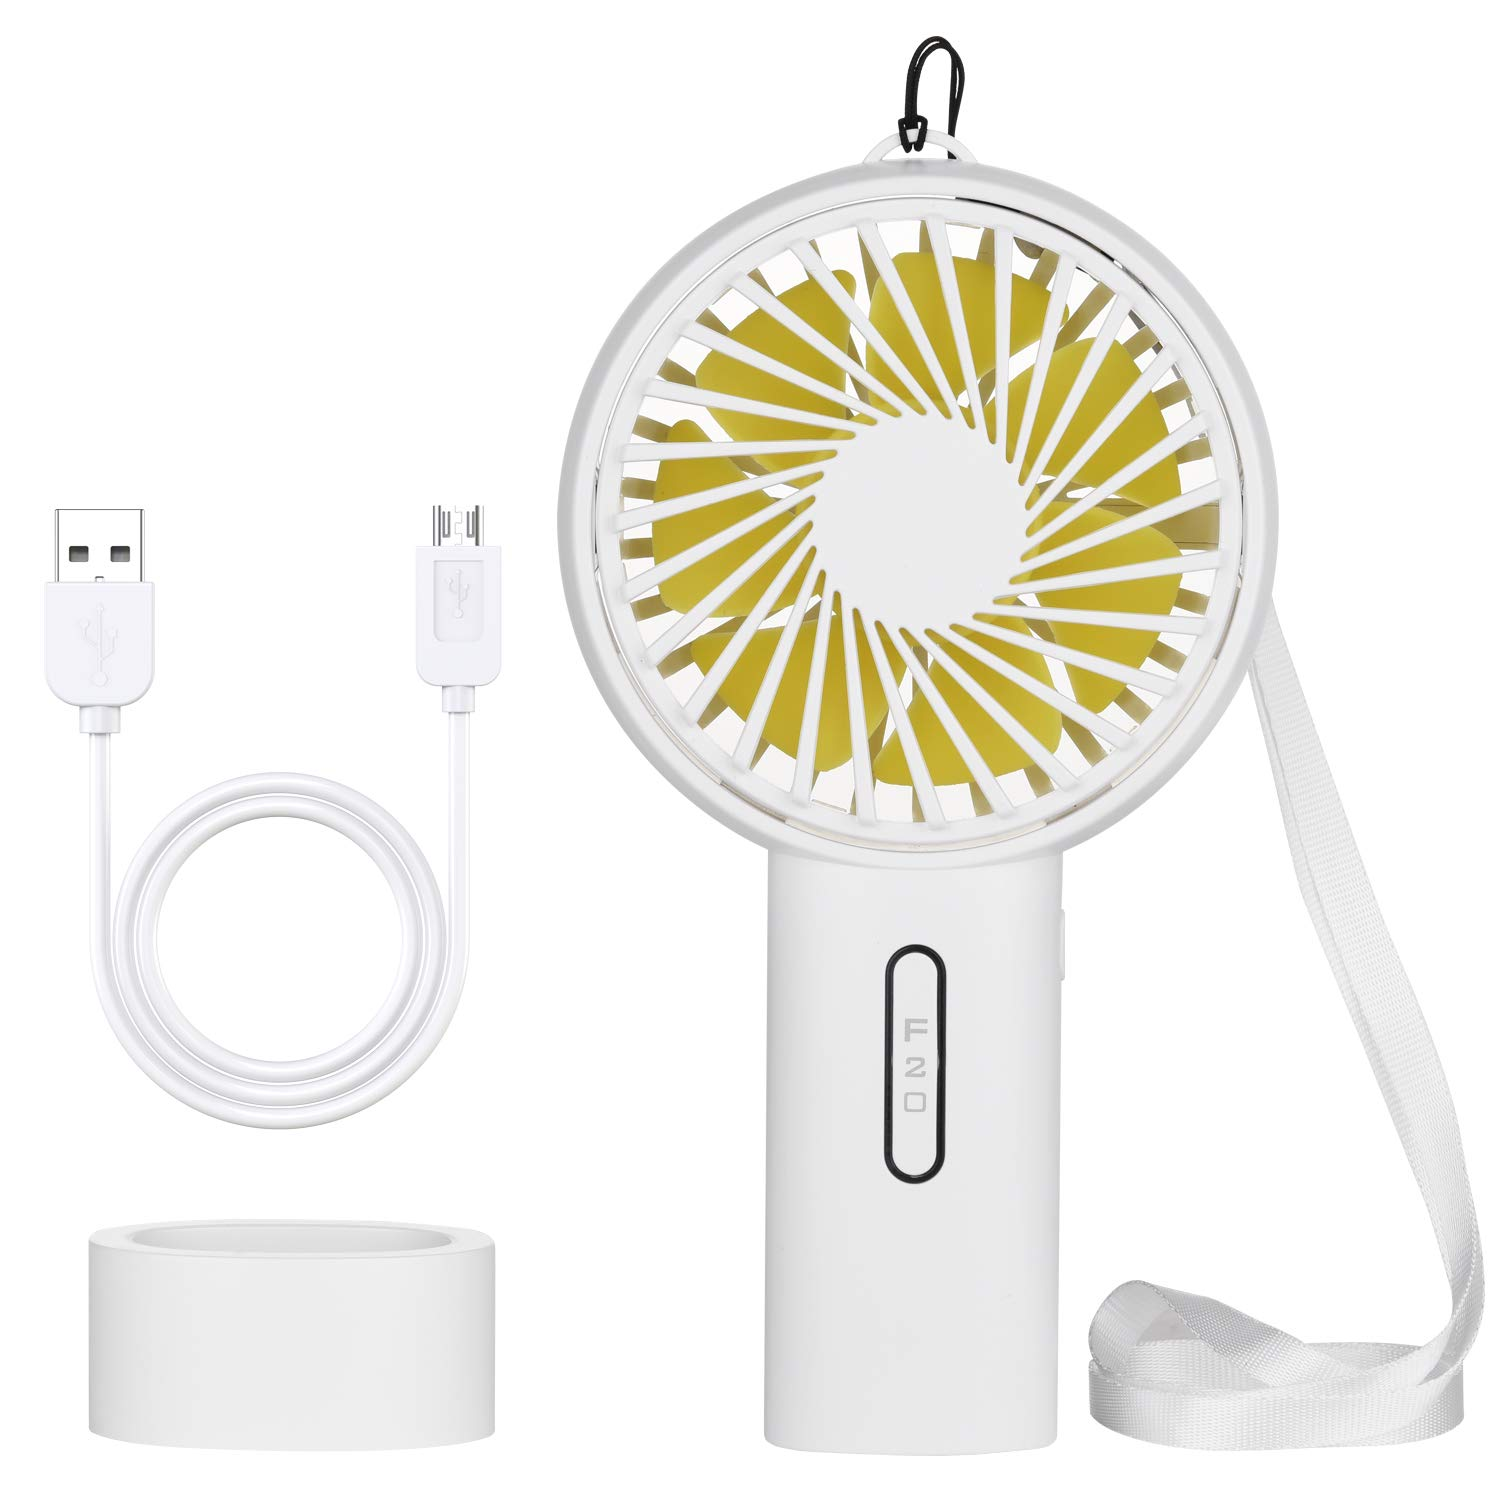 Portable Mini Handheld Fans Office Mini Electric Fan USB Desk Fan Rechargeable Powered Fan for Home Camping and Travel